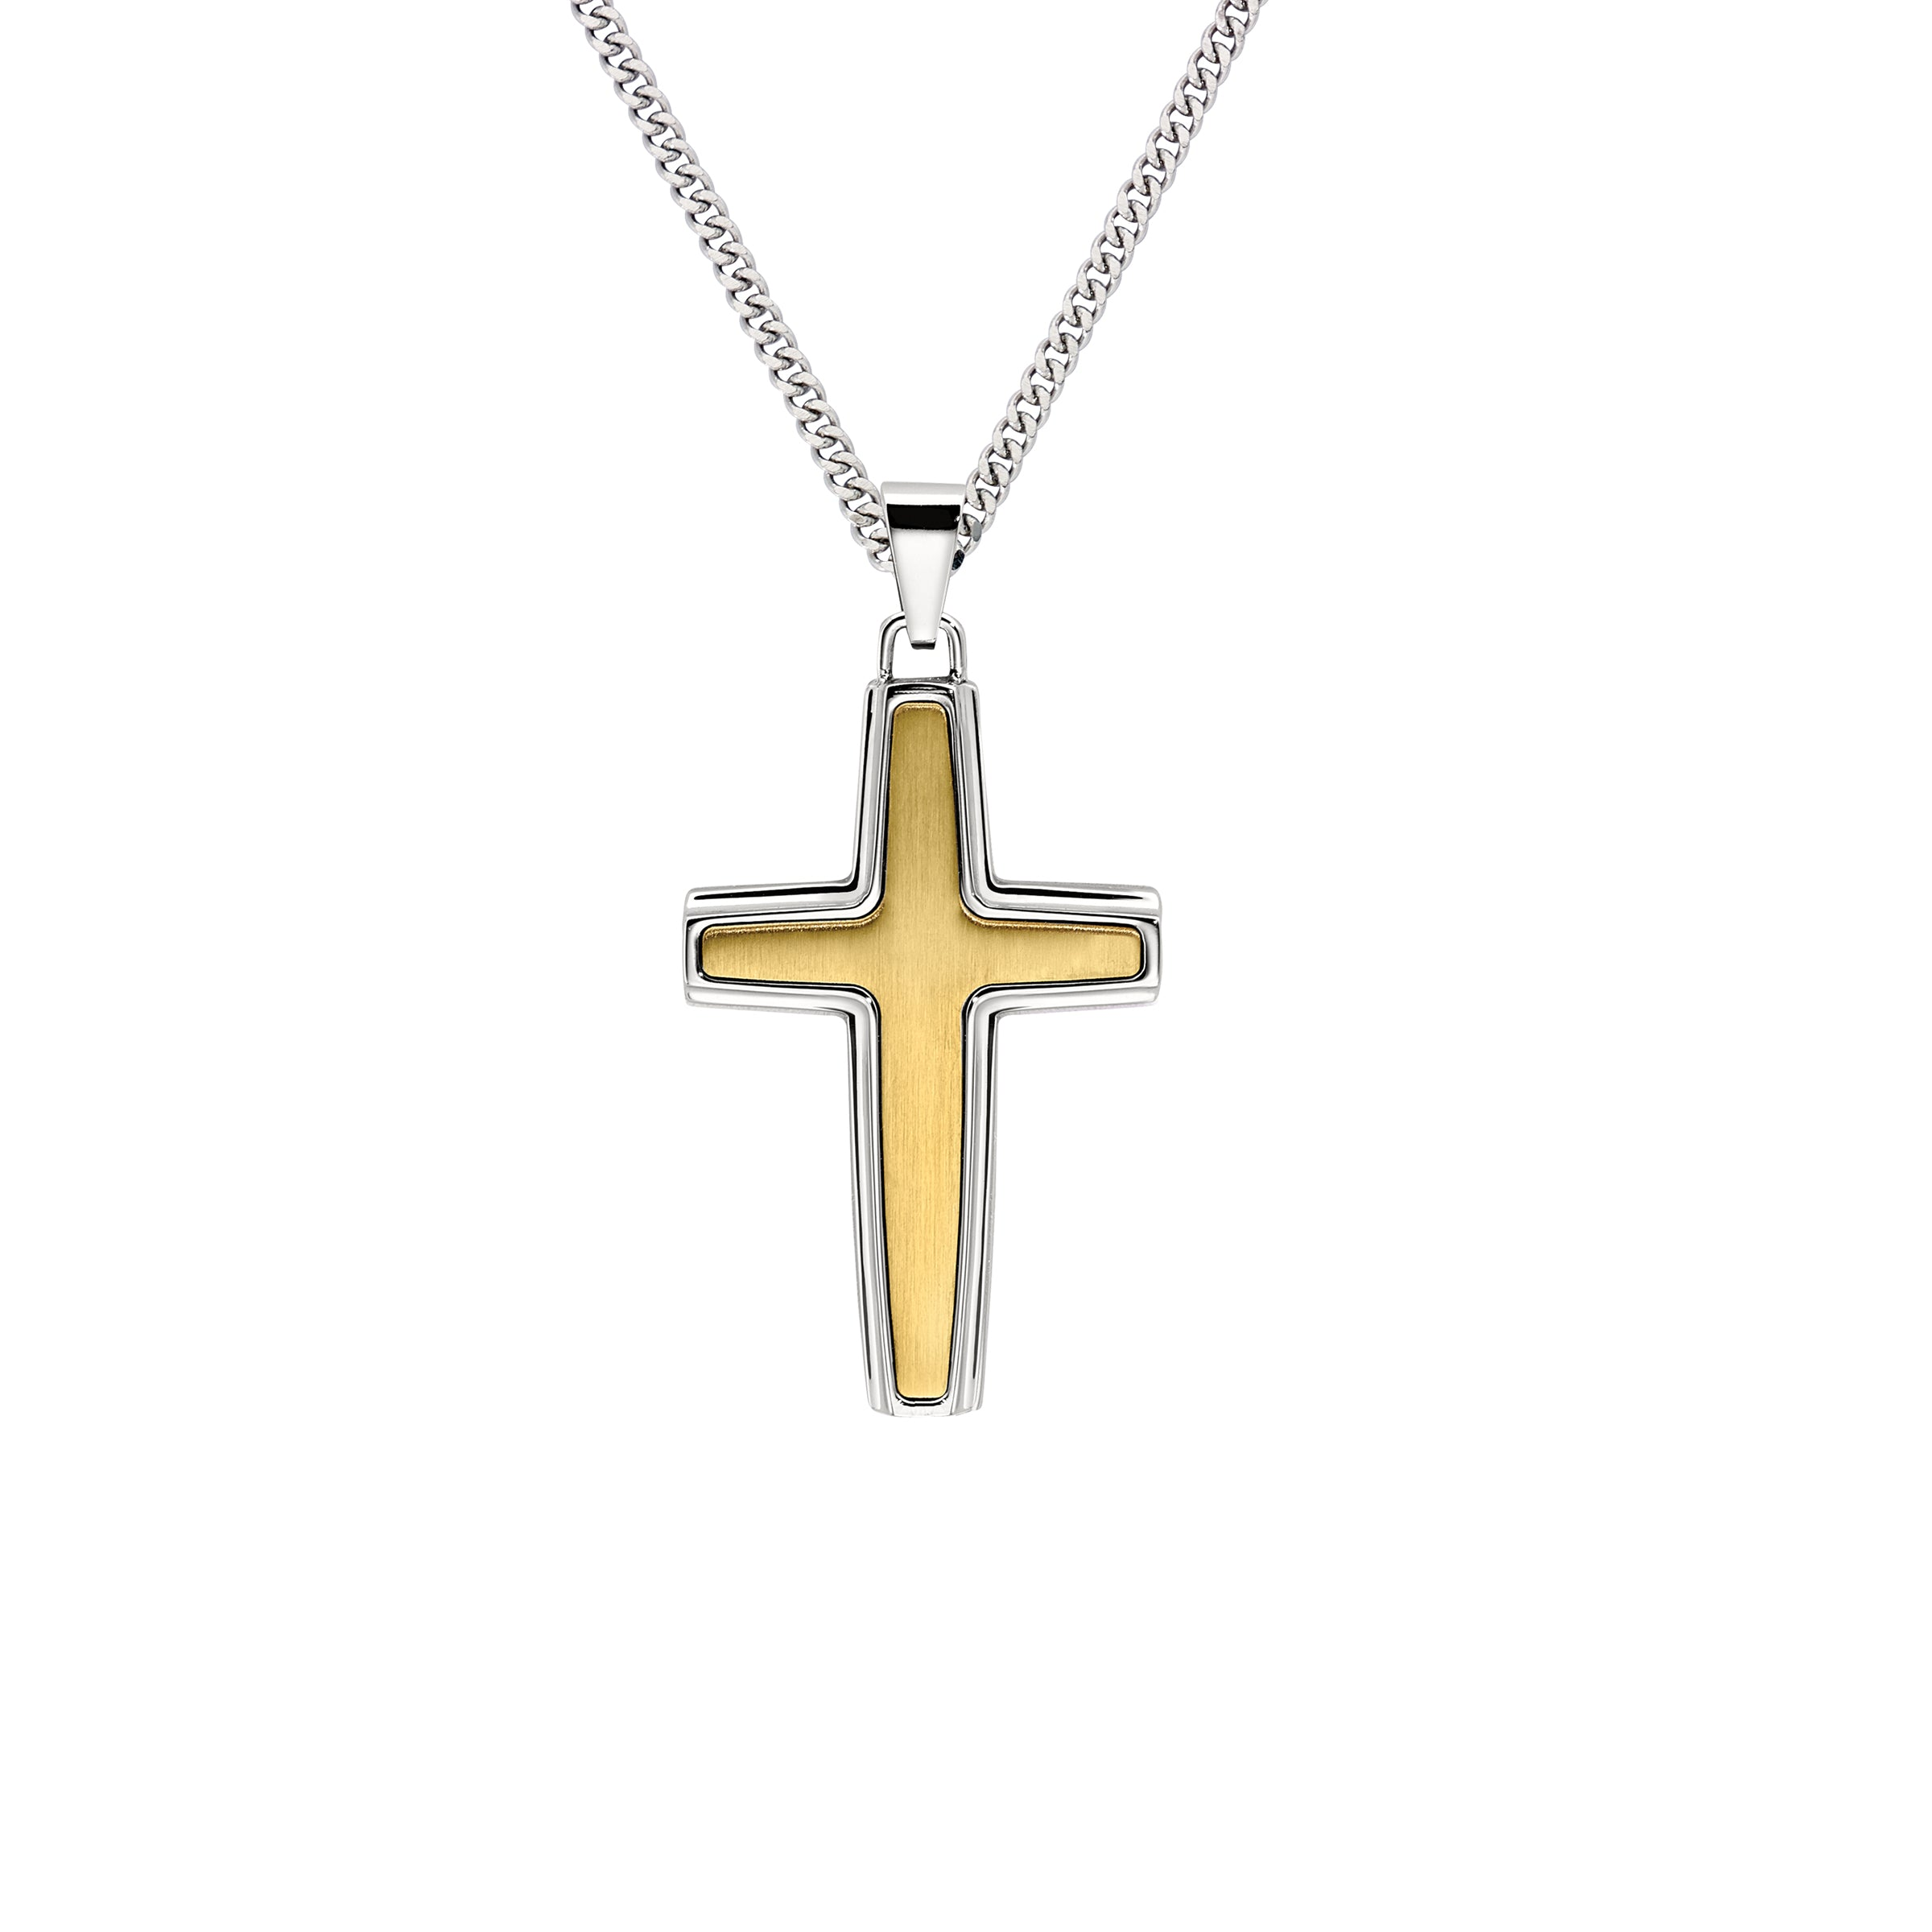 Gold Tone Cross Pendant, Stainless Steel